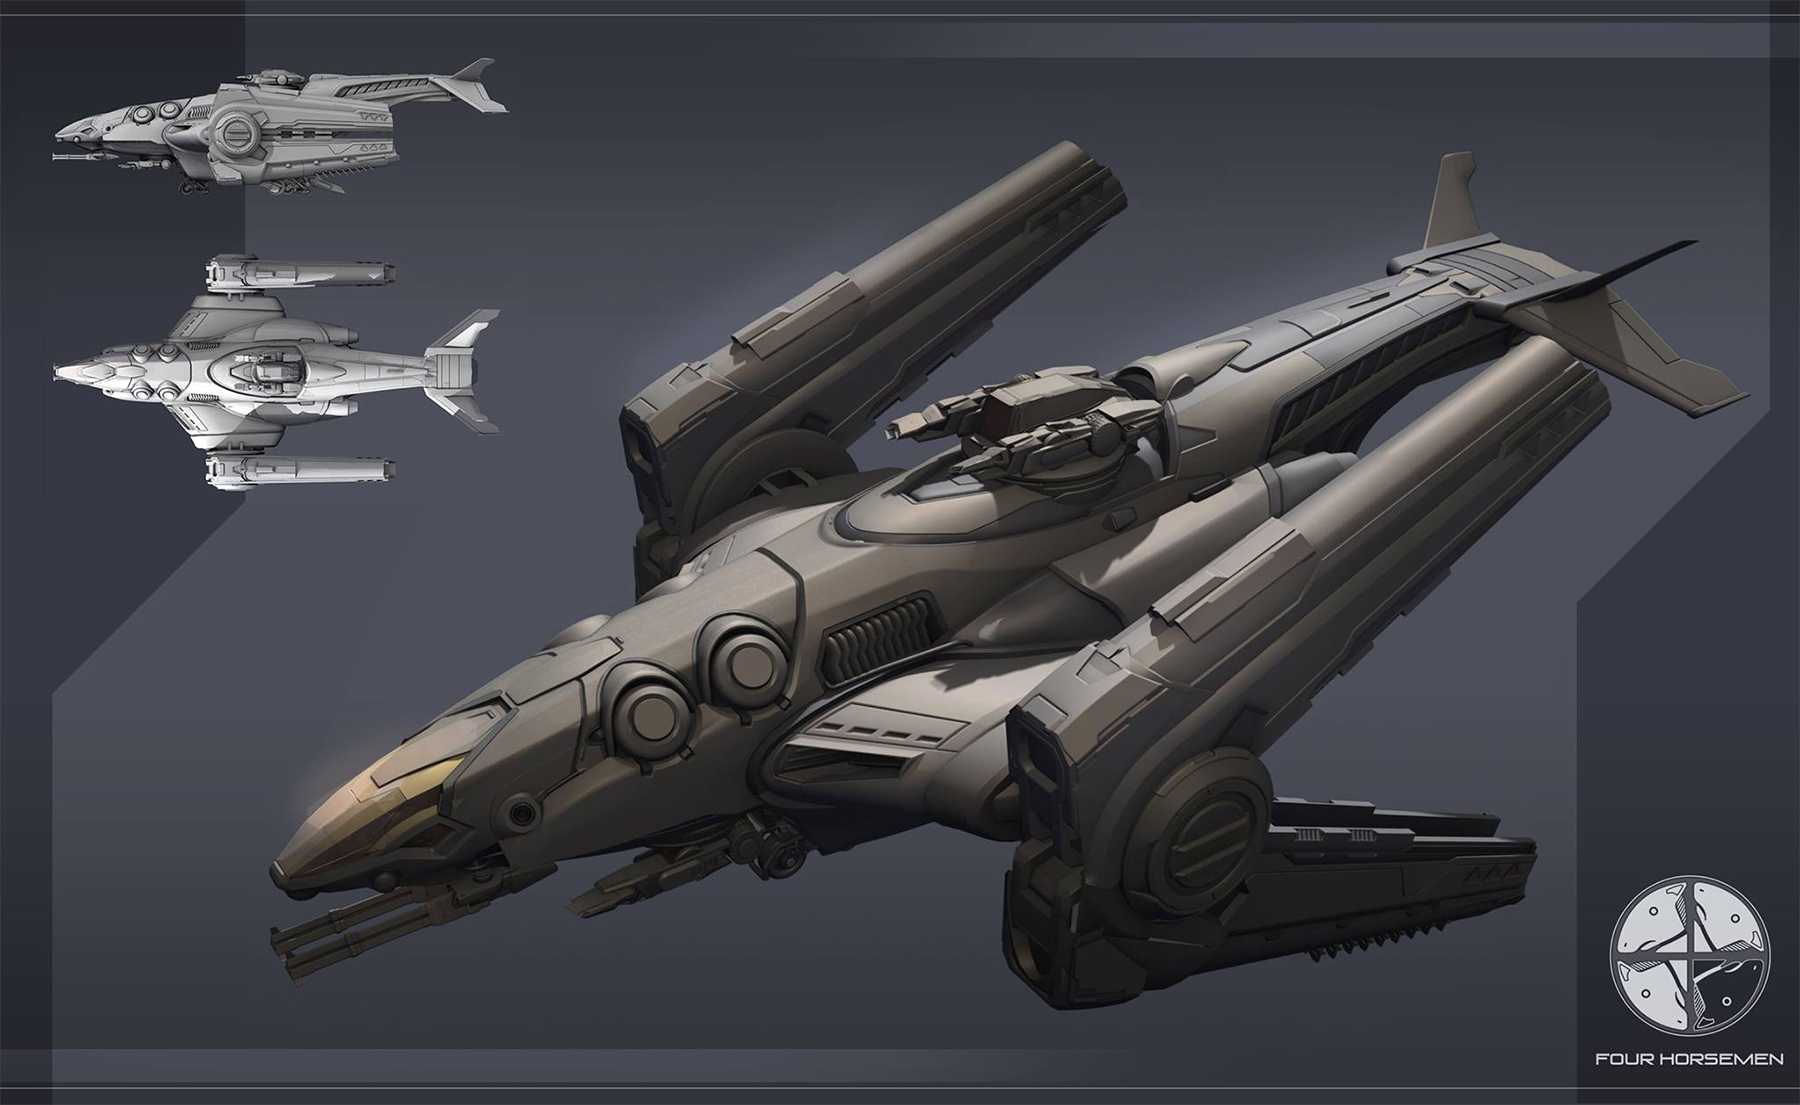 Sci Fi Starships : Concept ships spaceship by the four horsemen